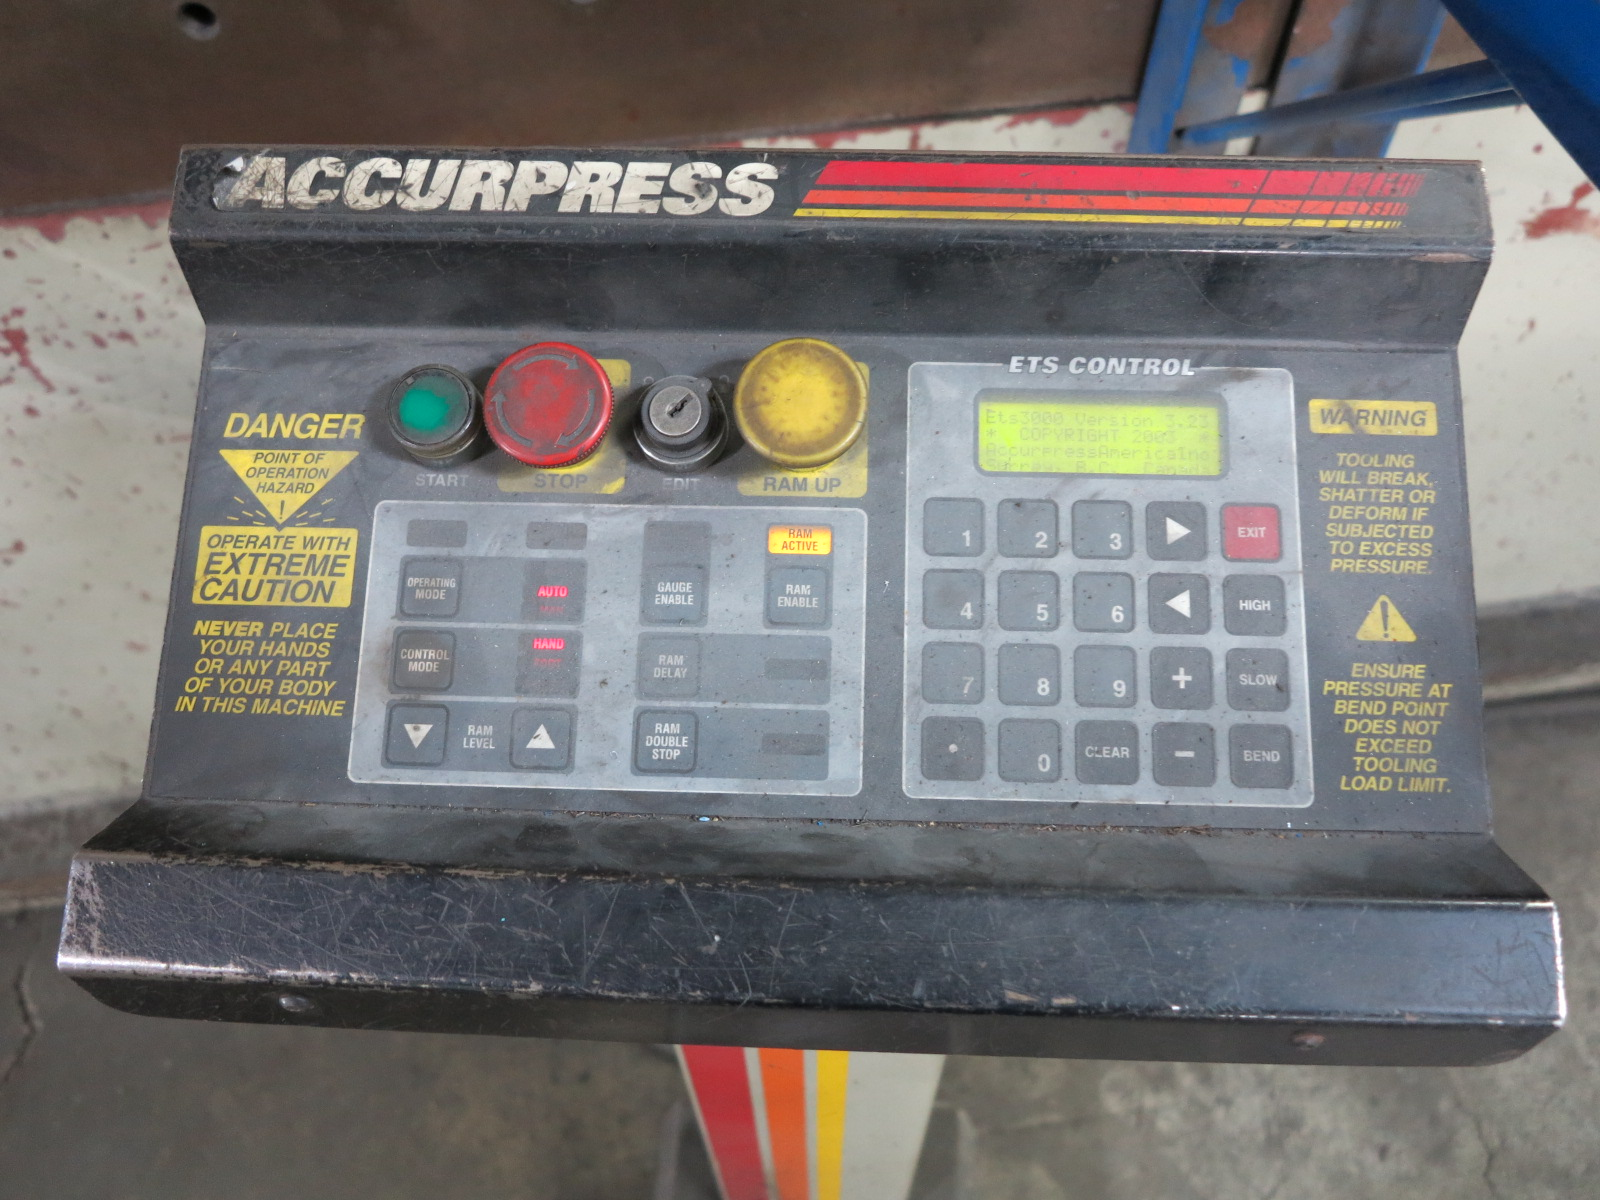 1999 ACCURPRESS BRAKE, MODEL 7017512, 175-TON X 12', E&S CONTROL, CNC BACKGAUGE, SUPPORTS, S/N 5758 - Image 4 of 7